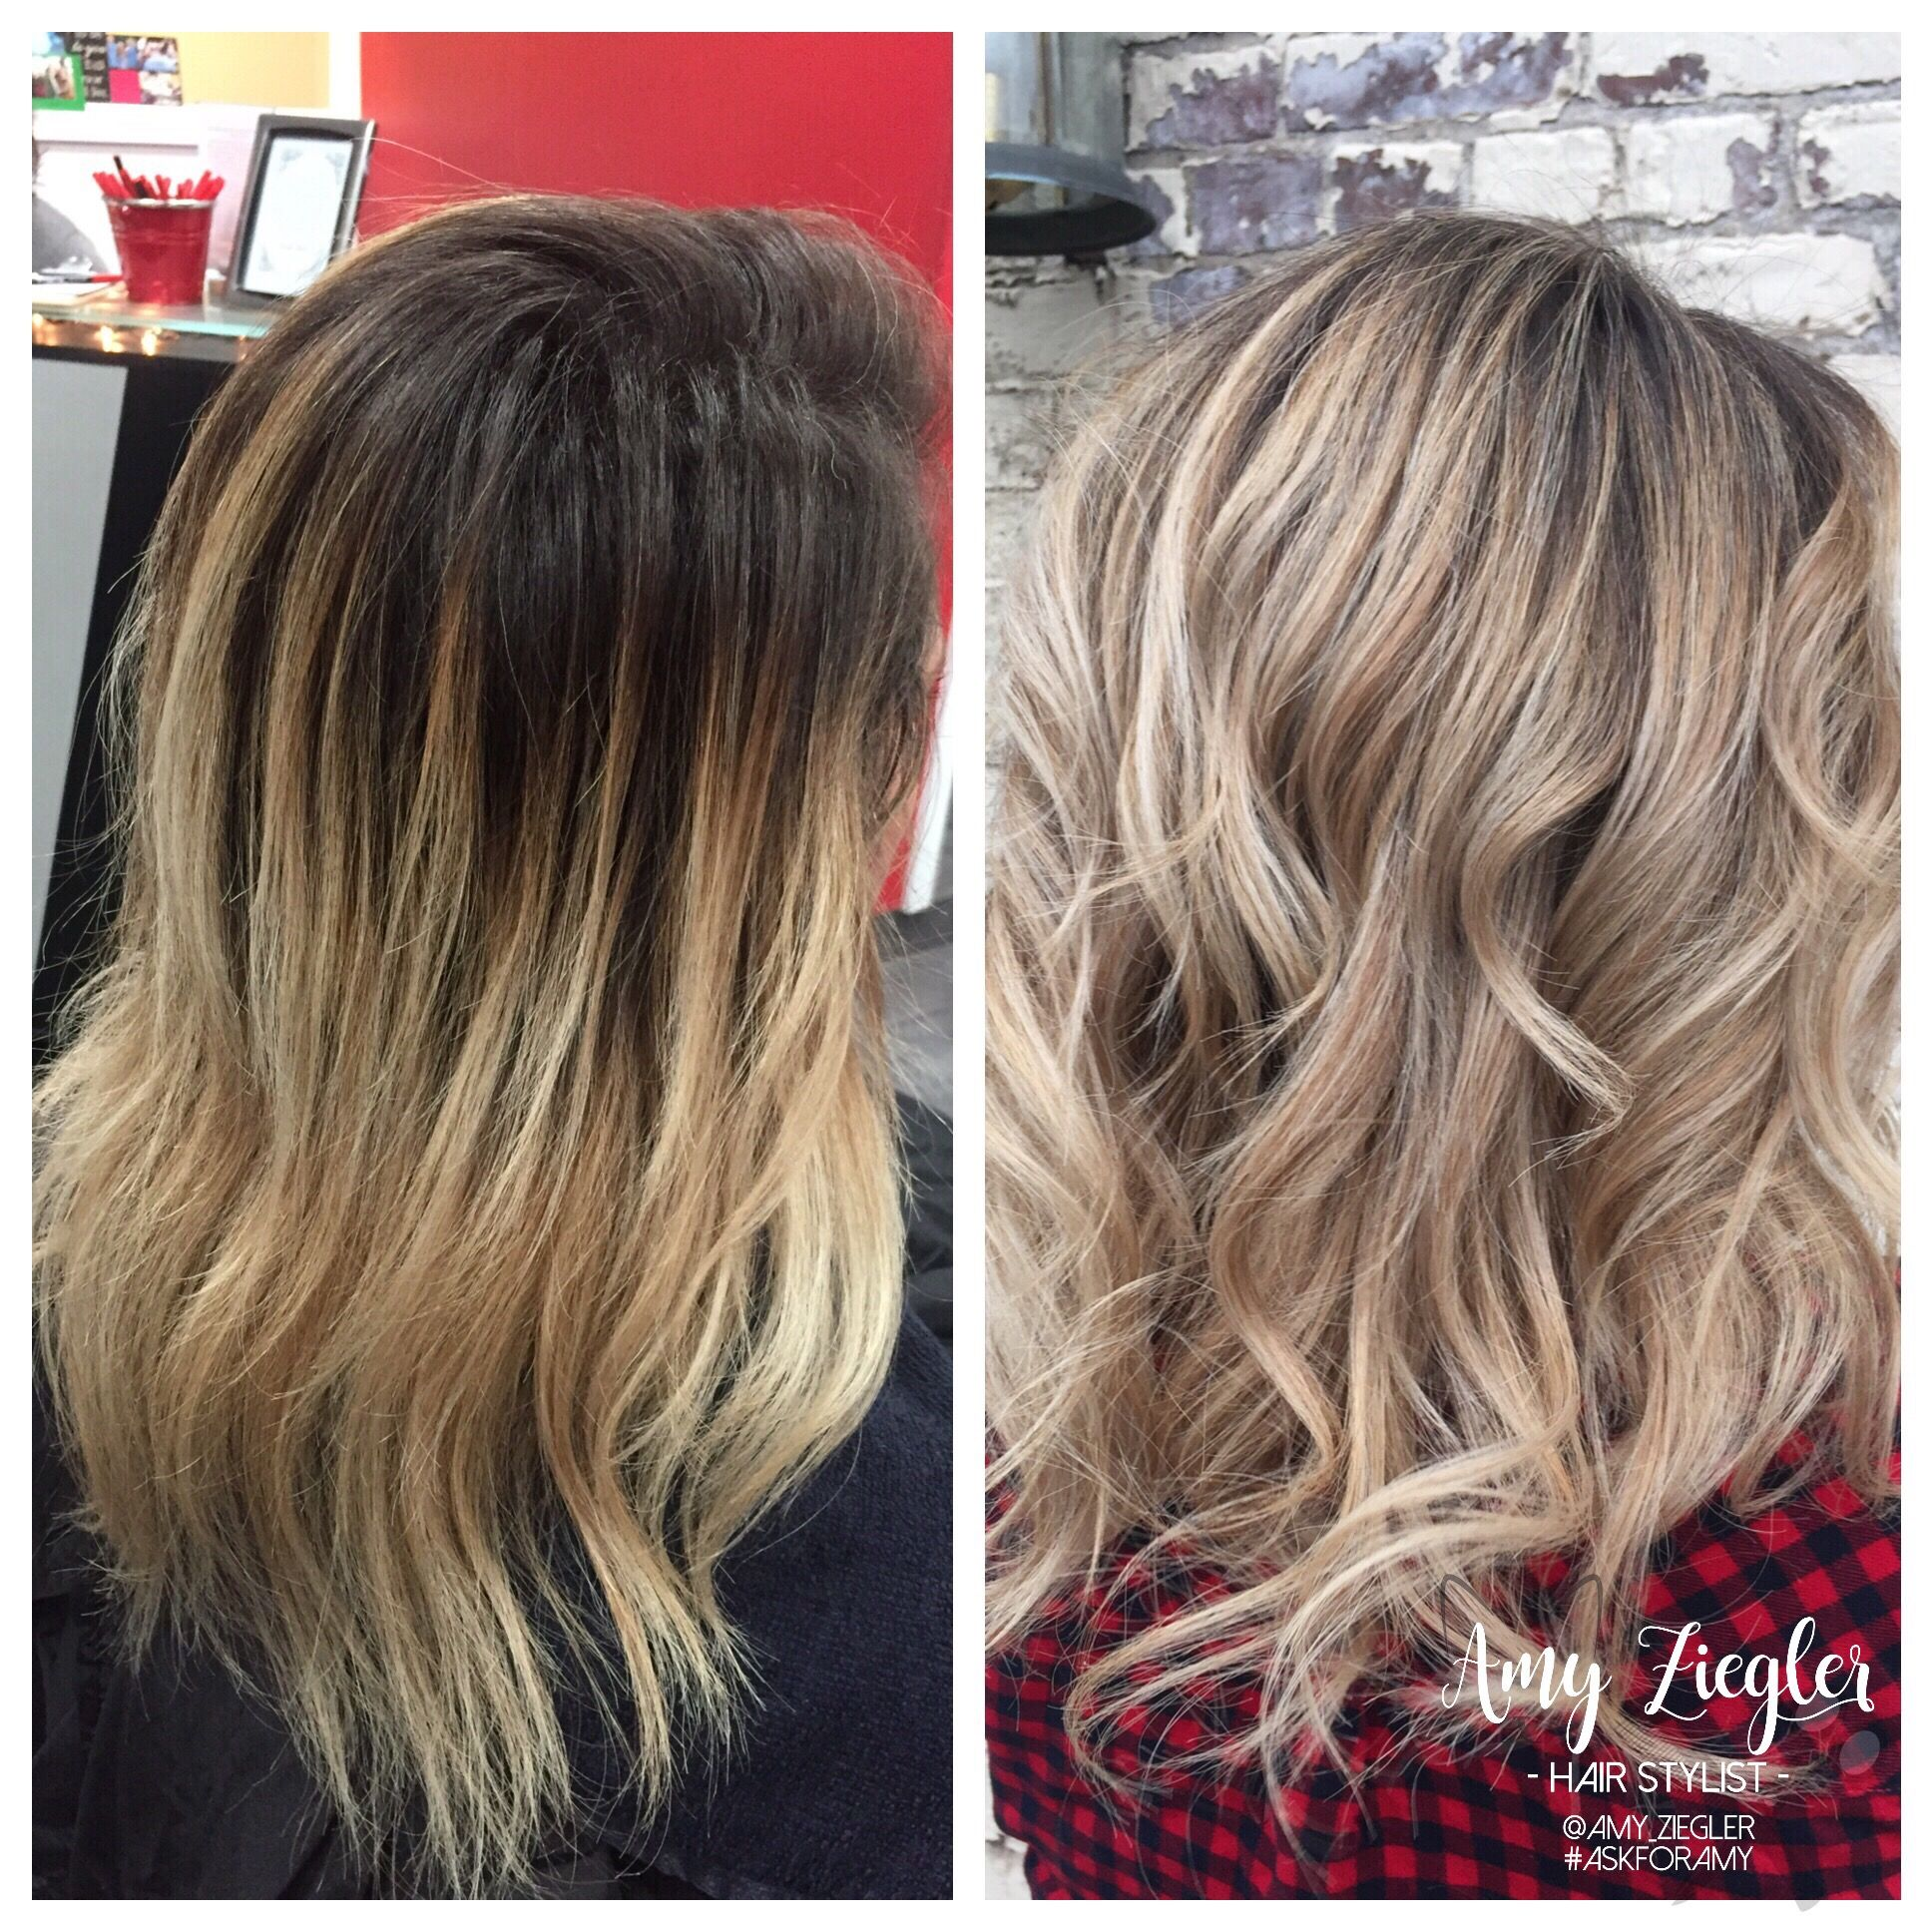 Before And After Blonde Babylights Transformation By Amy Ziegler Askforamy Versatilestrands Babylights Blonde Hair Styles Long Hair Styles